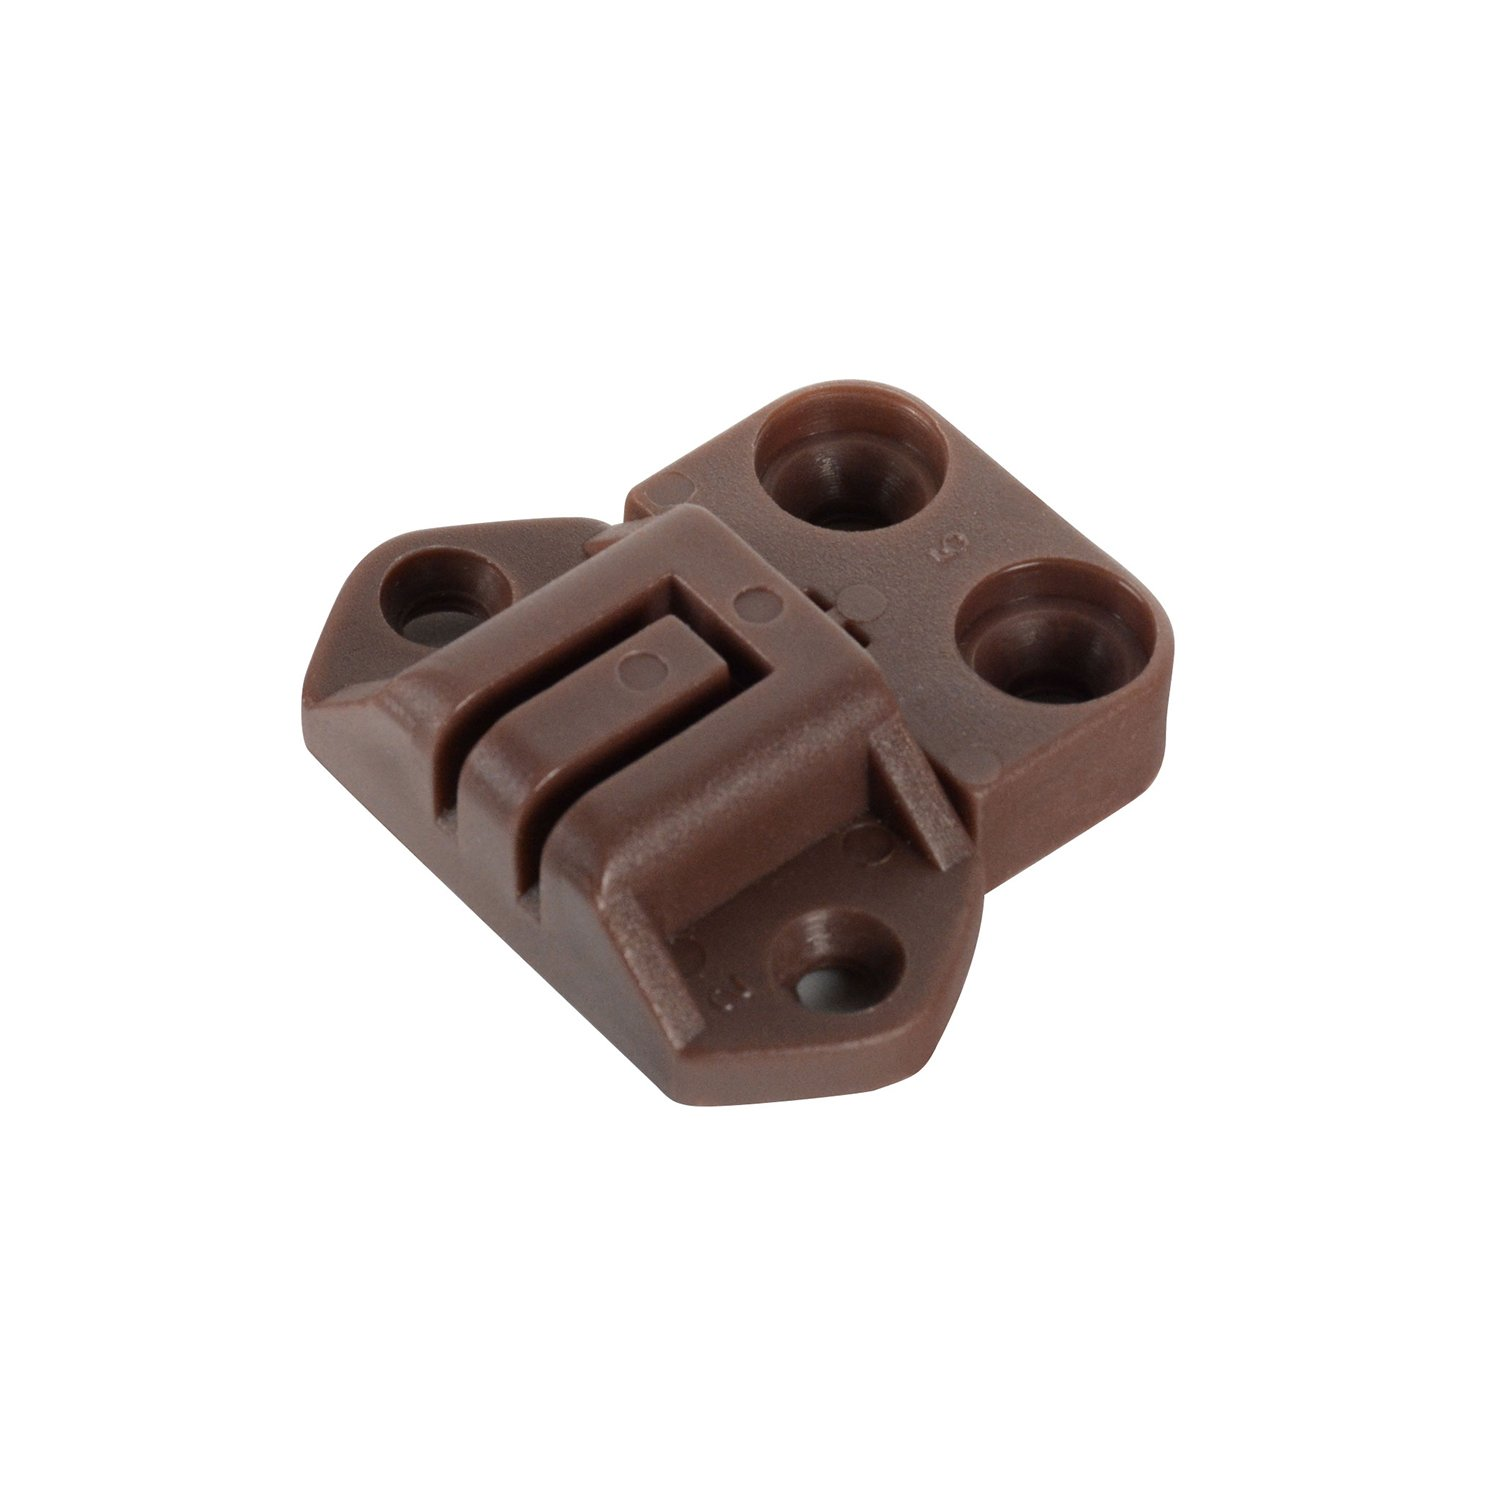 CKP Brand Table Alignment Lock and Strike, Brown - 4 Pack